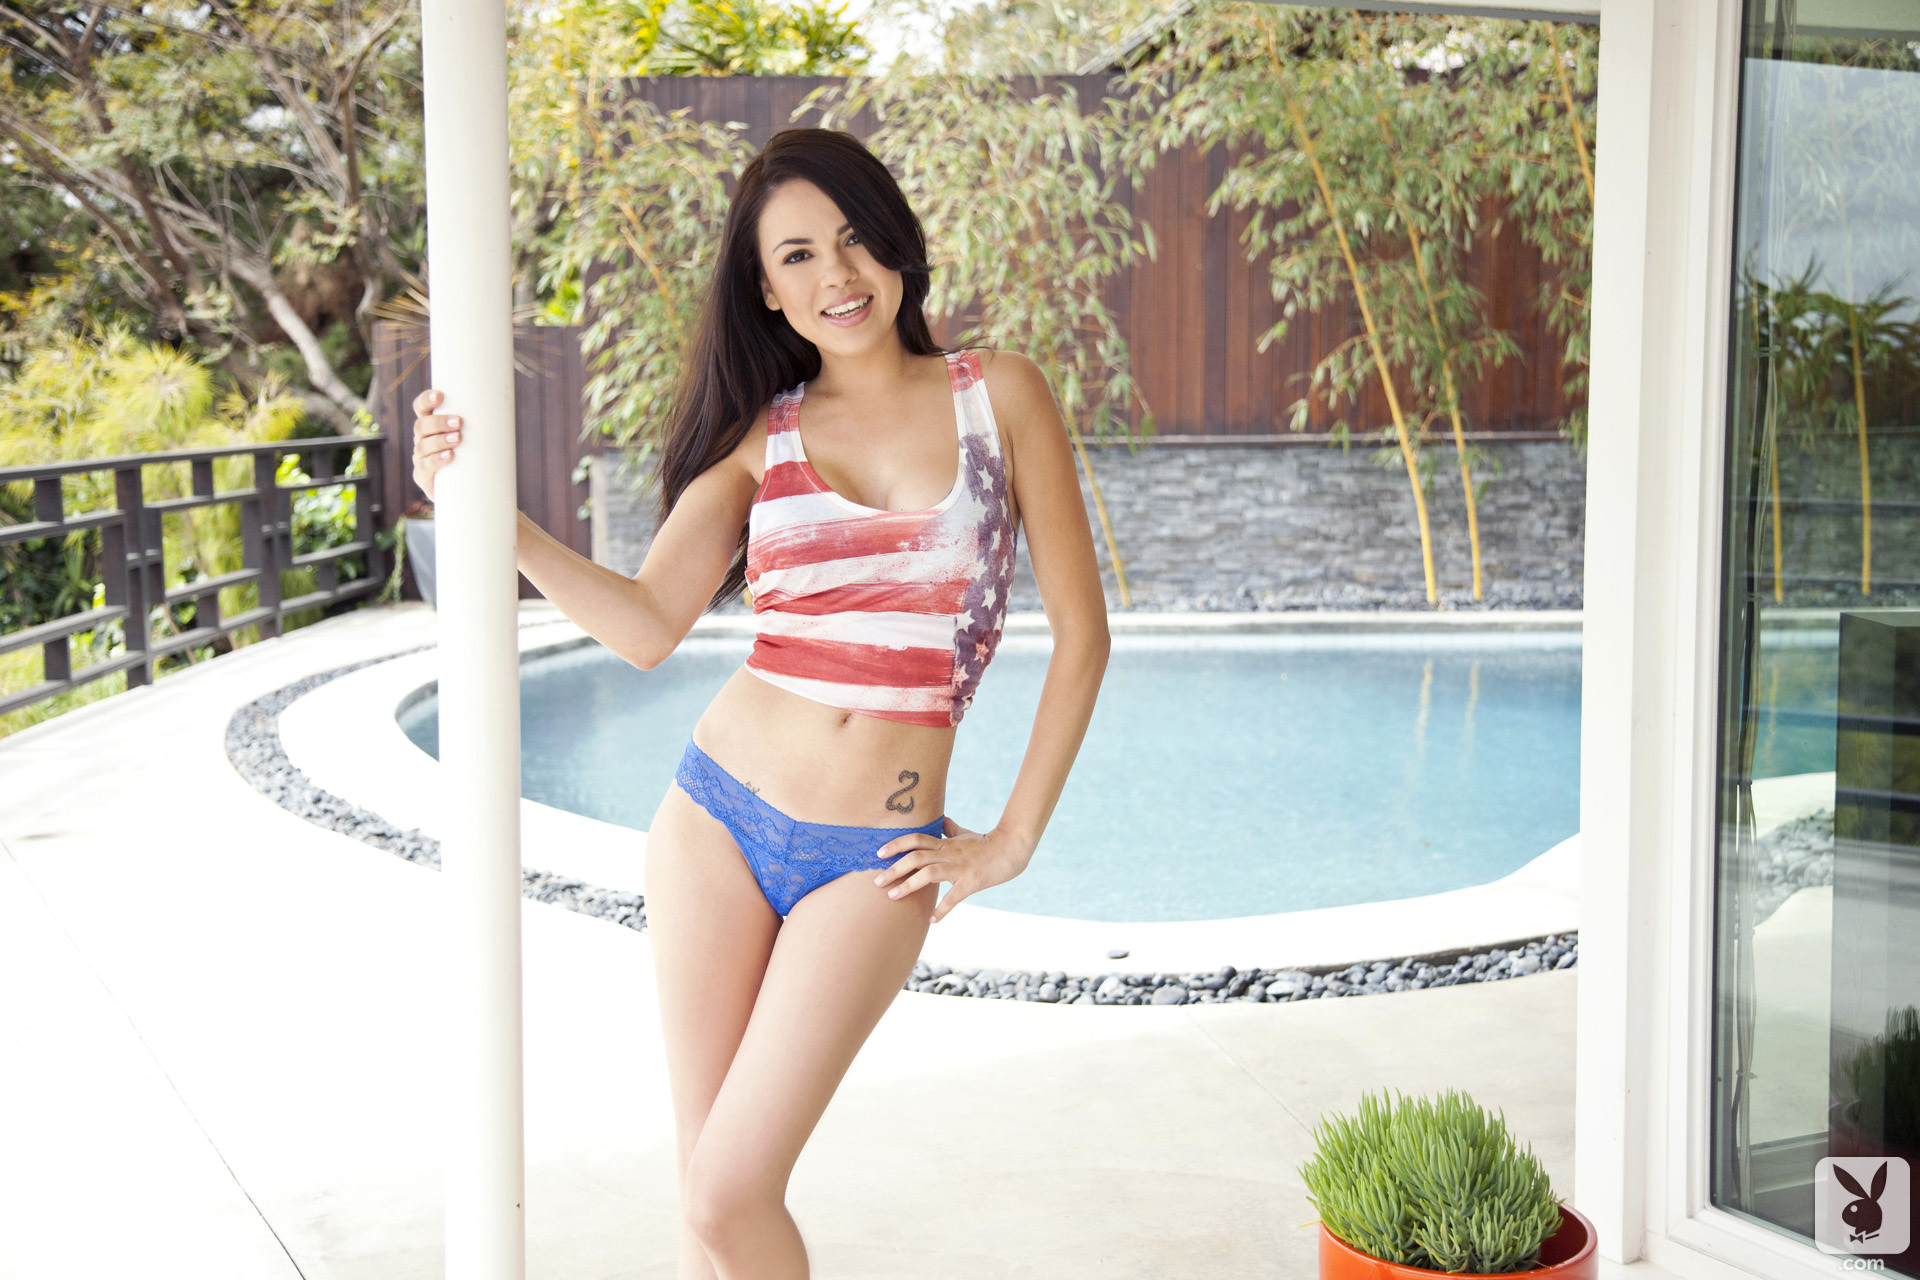 Lissette Marie in a Playboy photoshoot